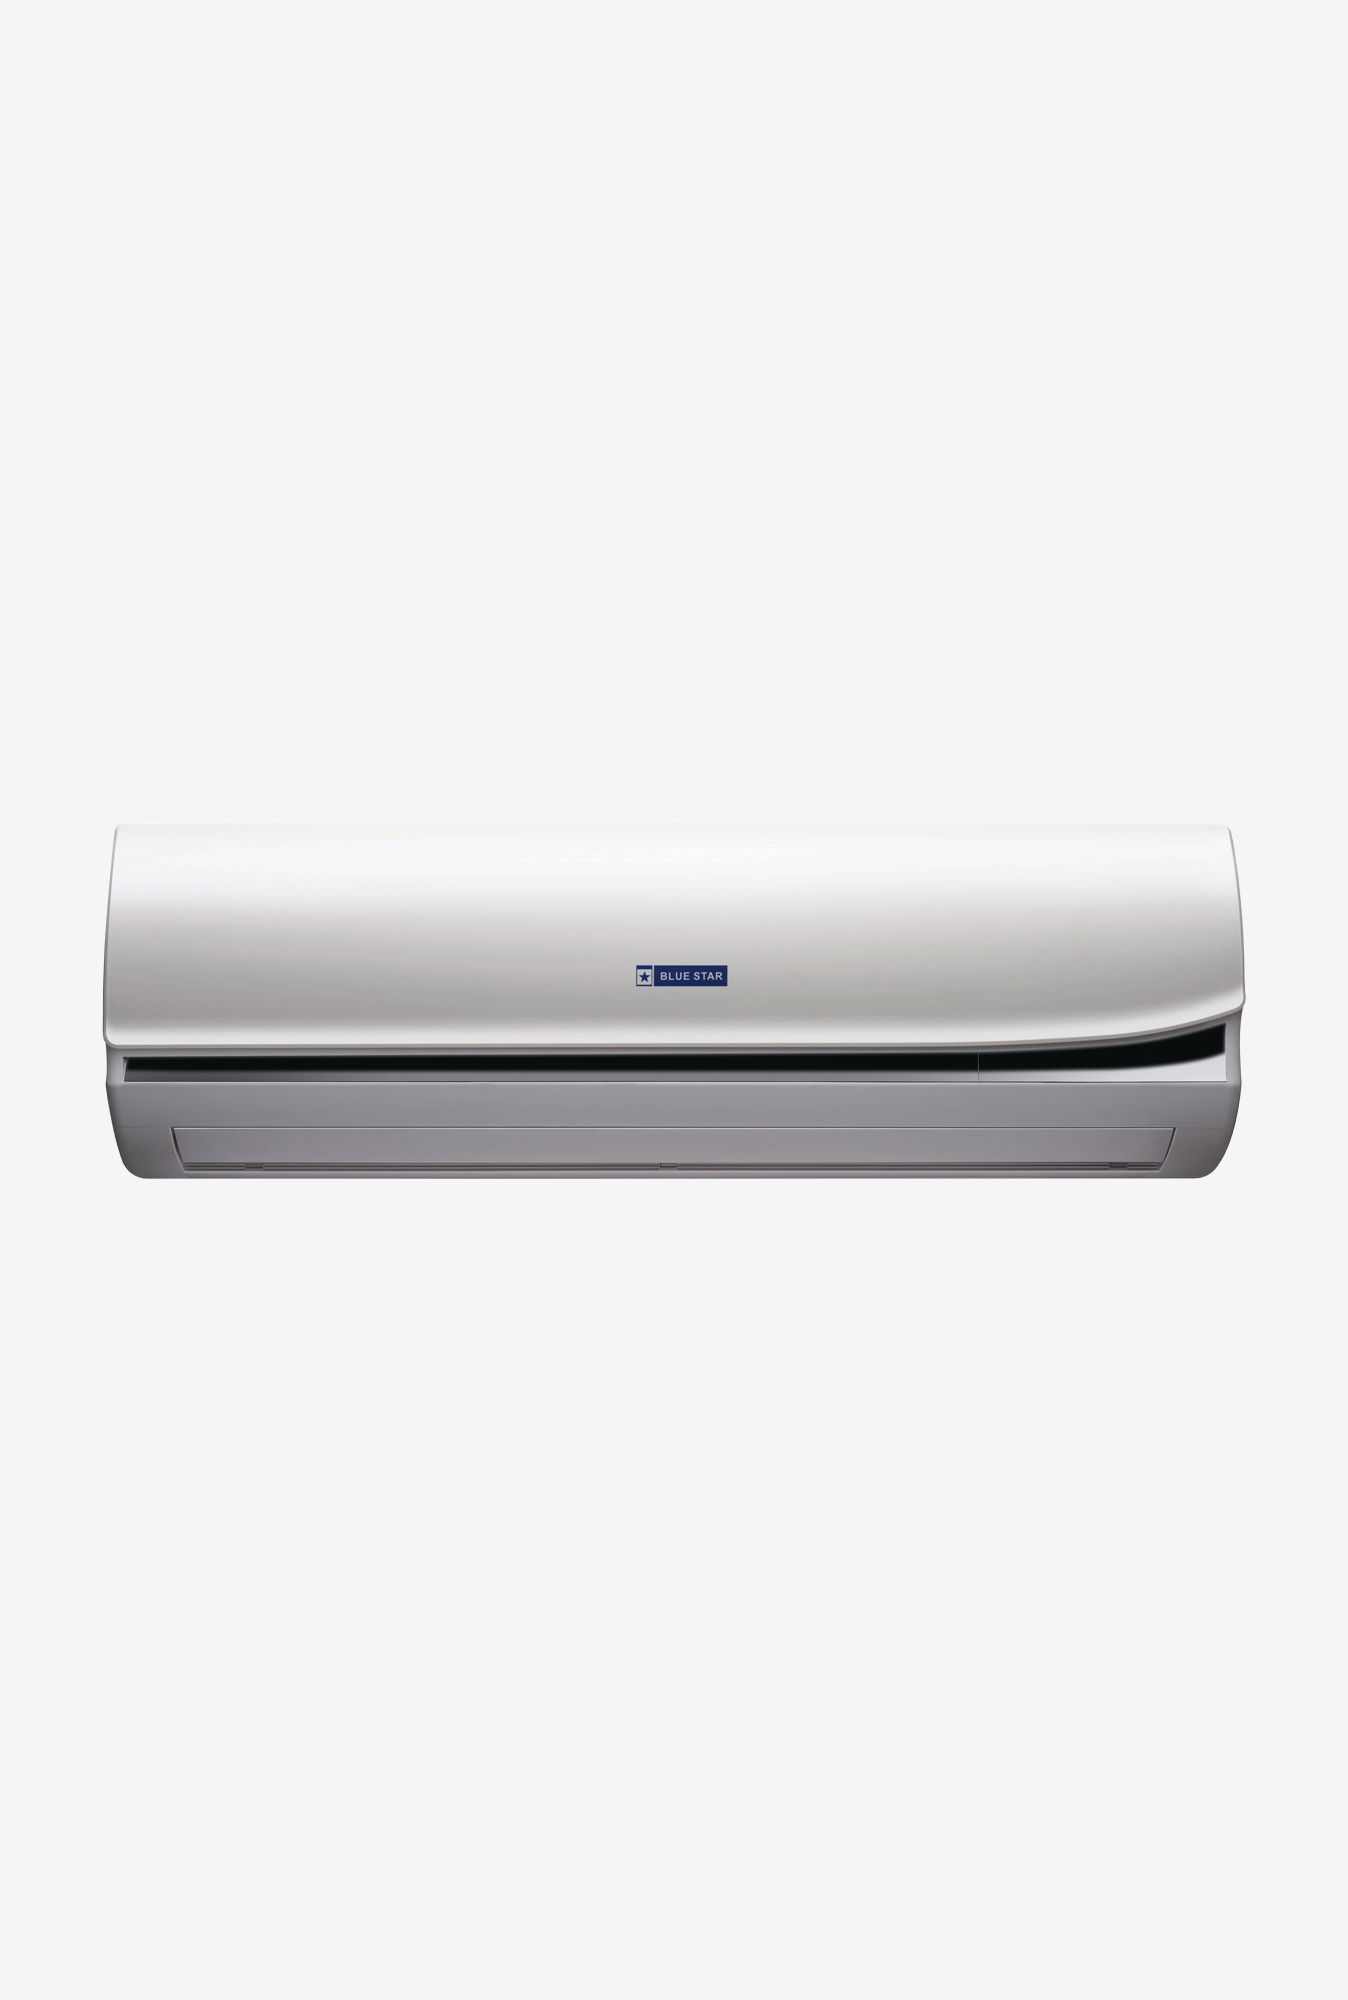 Blue Star 3HW09JCFU 0.75T 3 Star Copper Split Air Conditioner